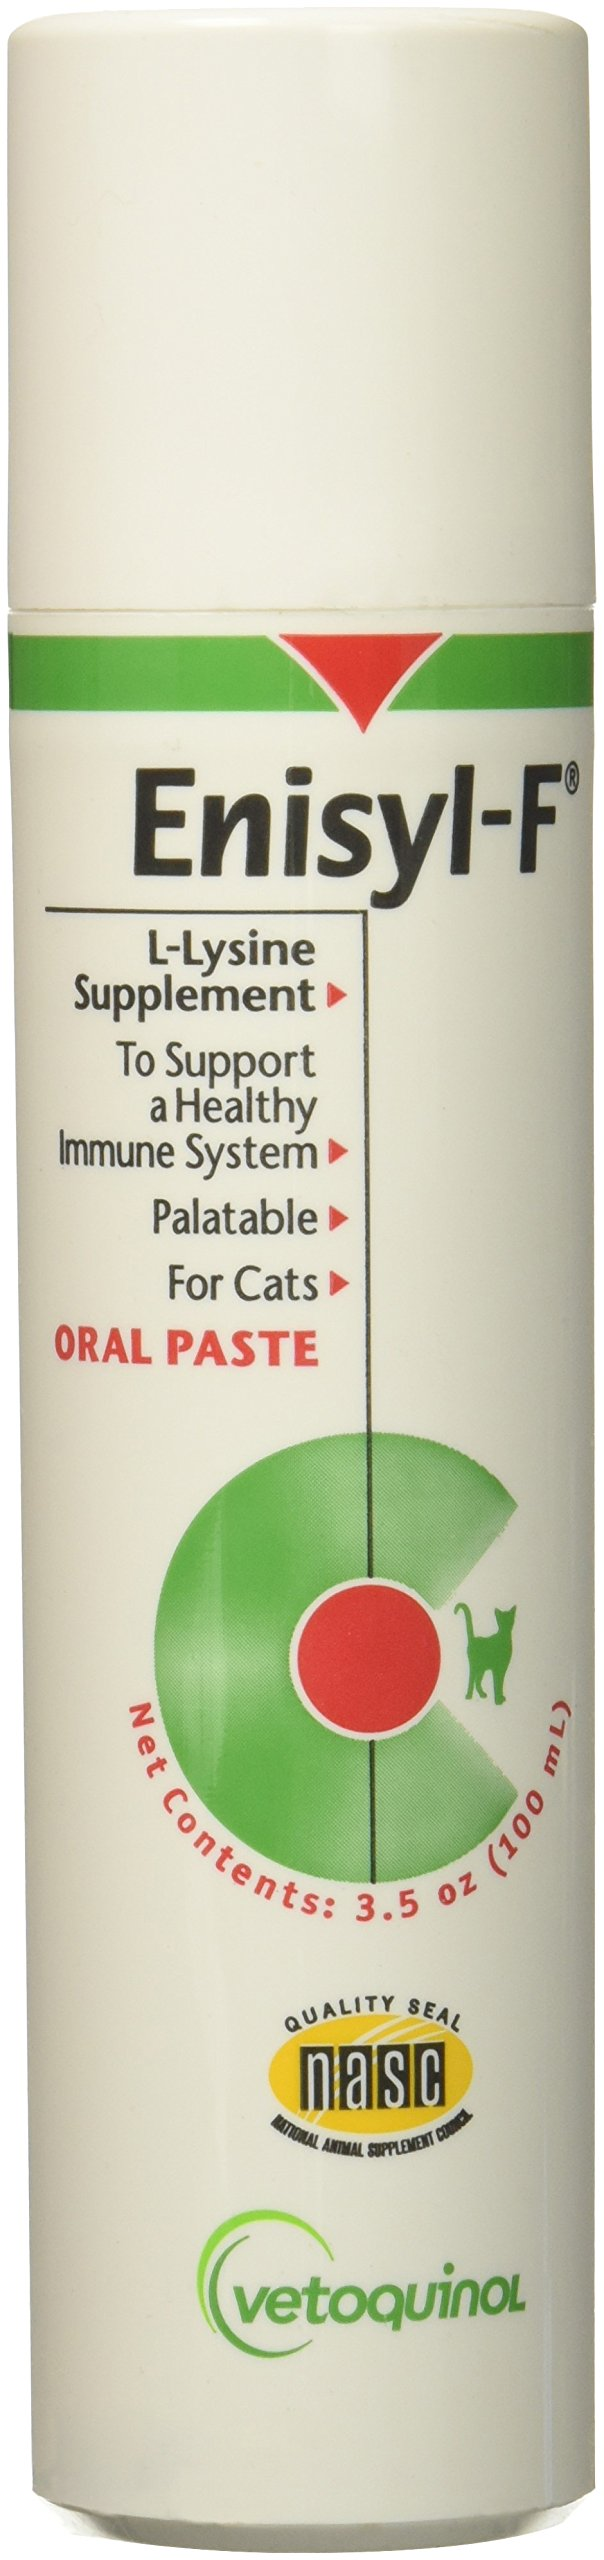 6 Packs Enisyl-F Oral Paste for Cats 600 ml (6 x 100 ml)